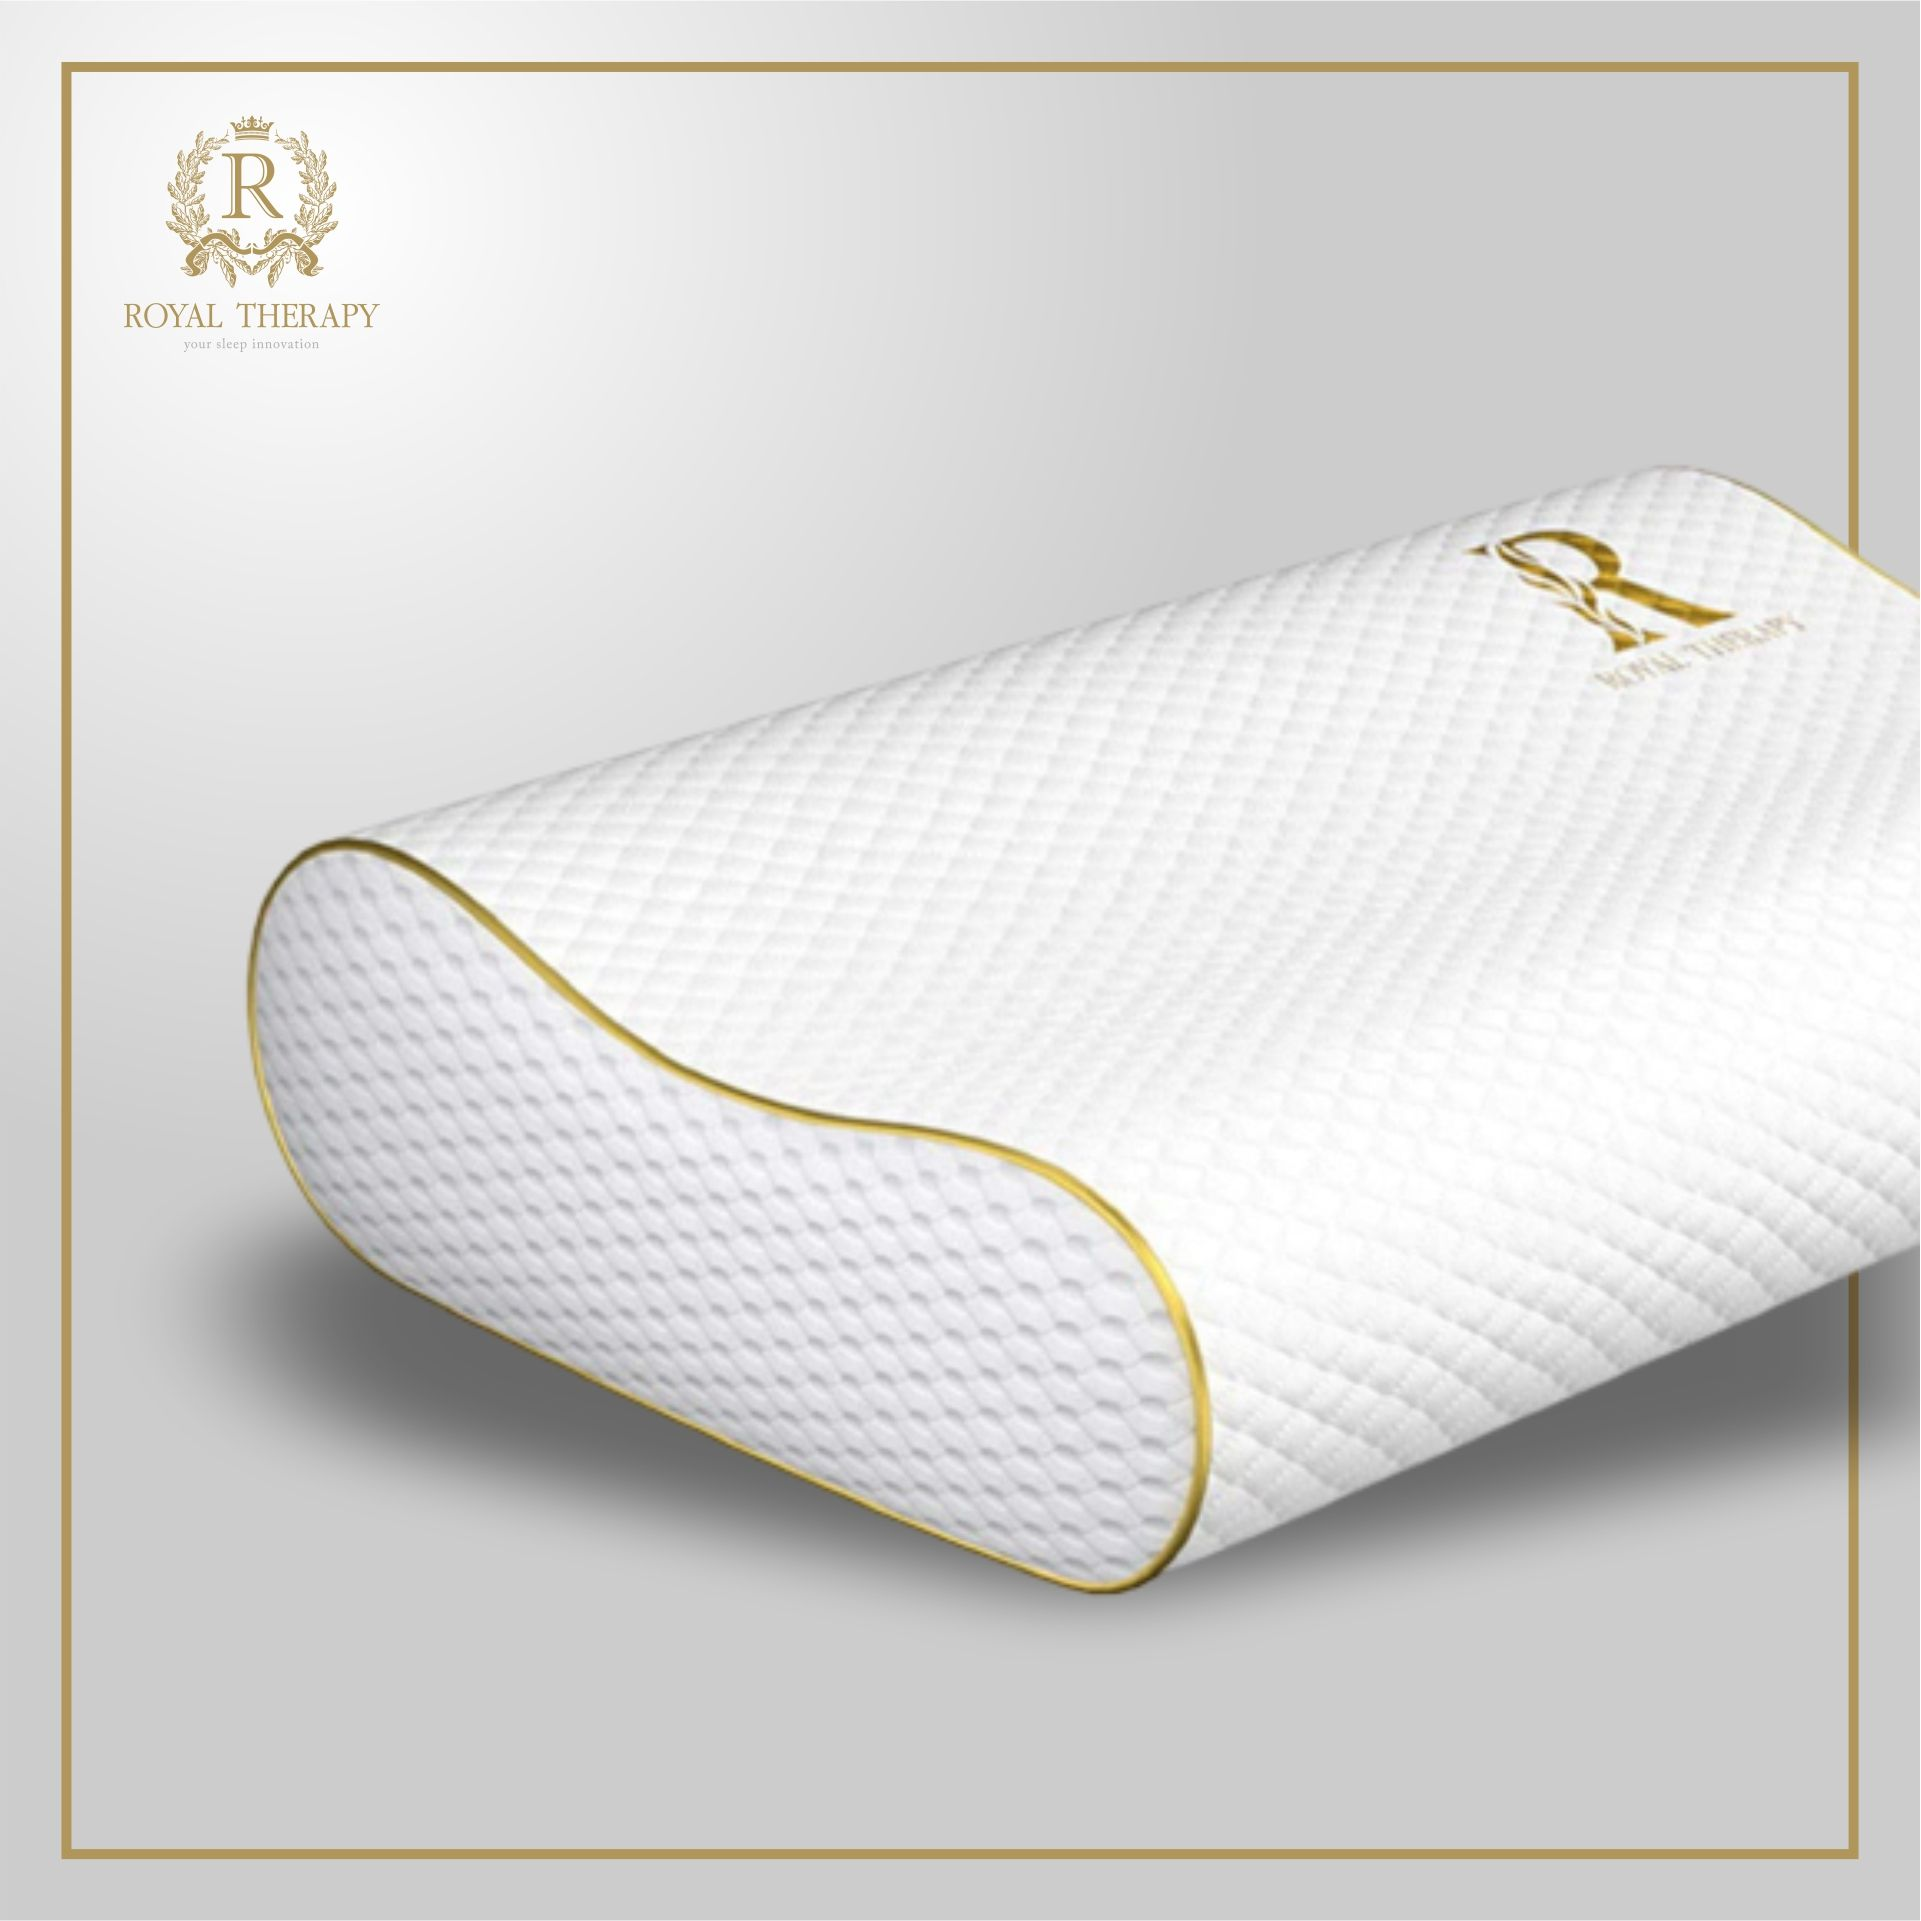 royal therapy snuggle bed pillows are